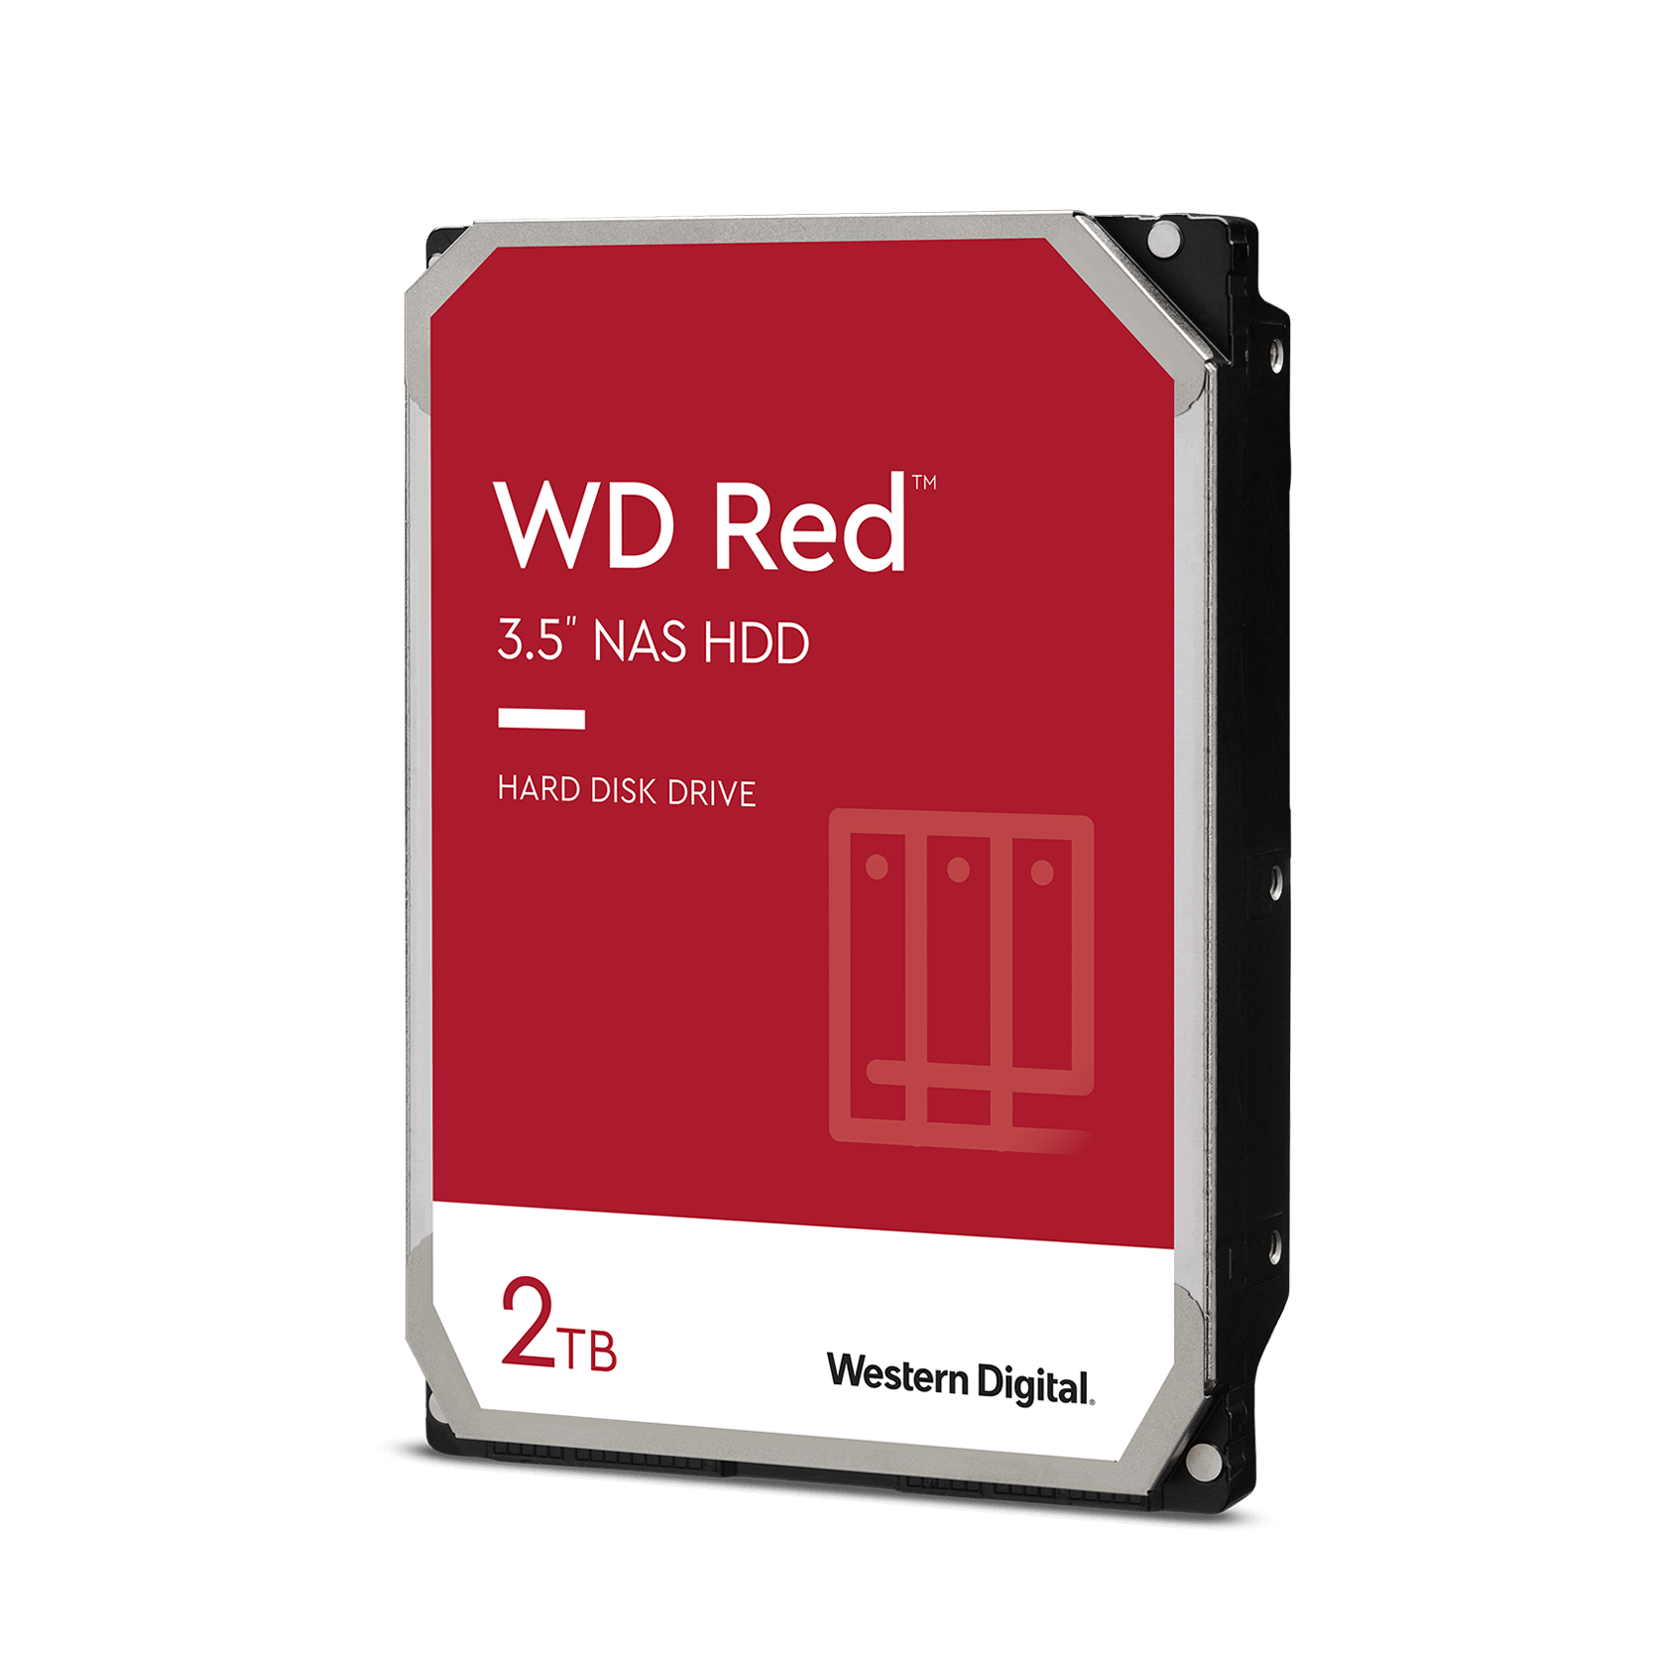 WD Red NAS Hard Drive | Western Digital Store